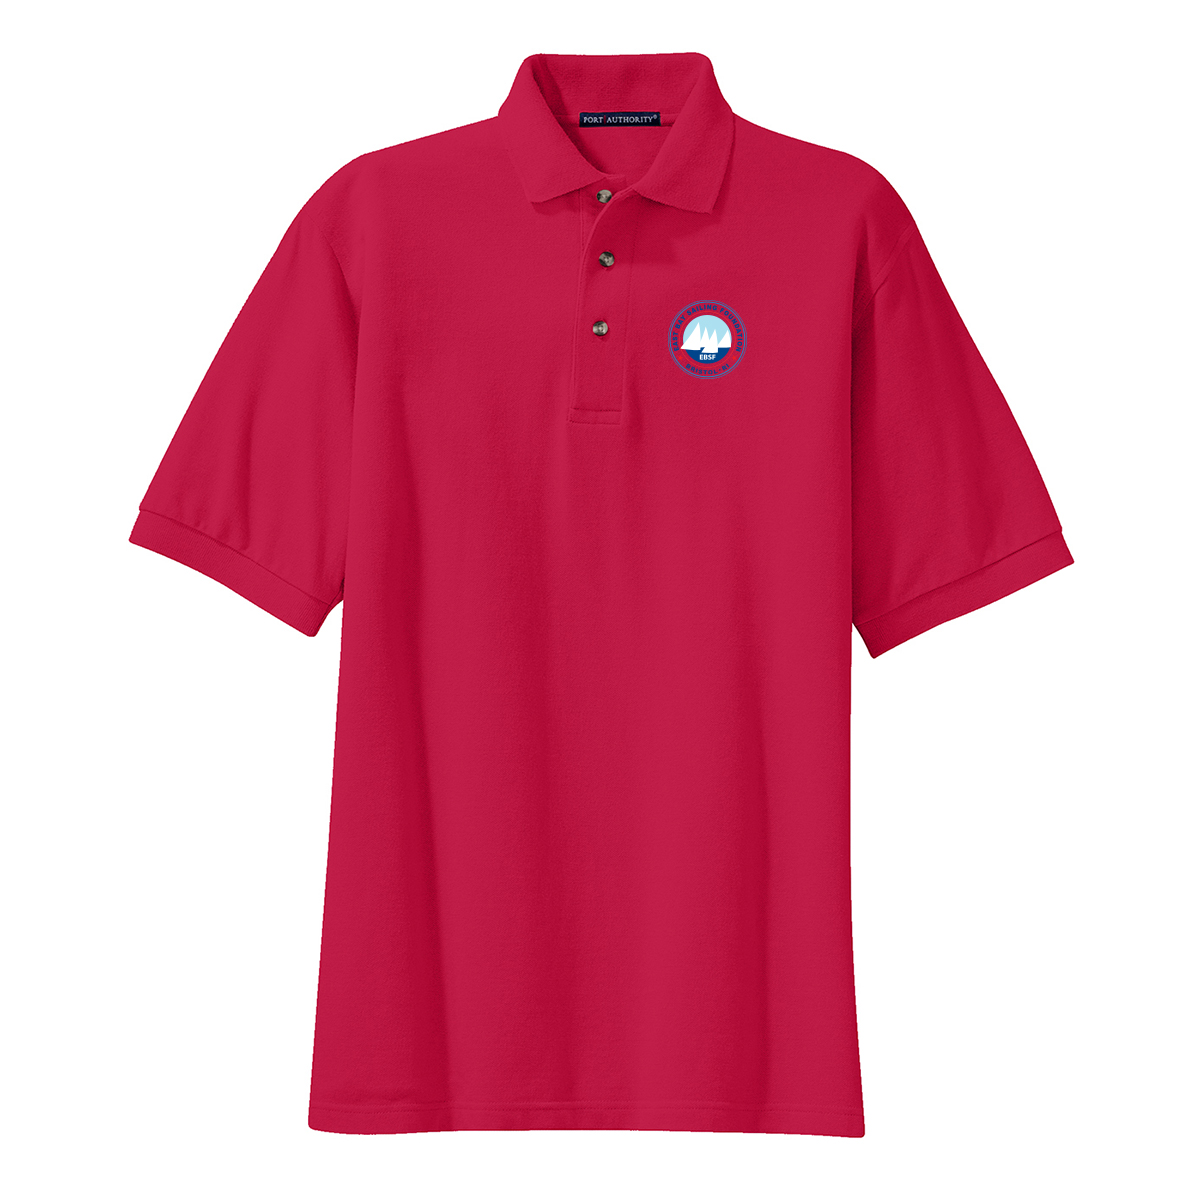 EBSF - M'S COTTON POLO